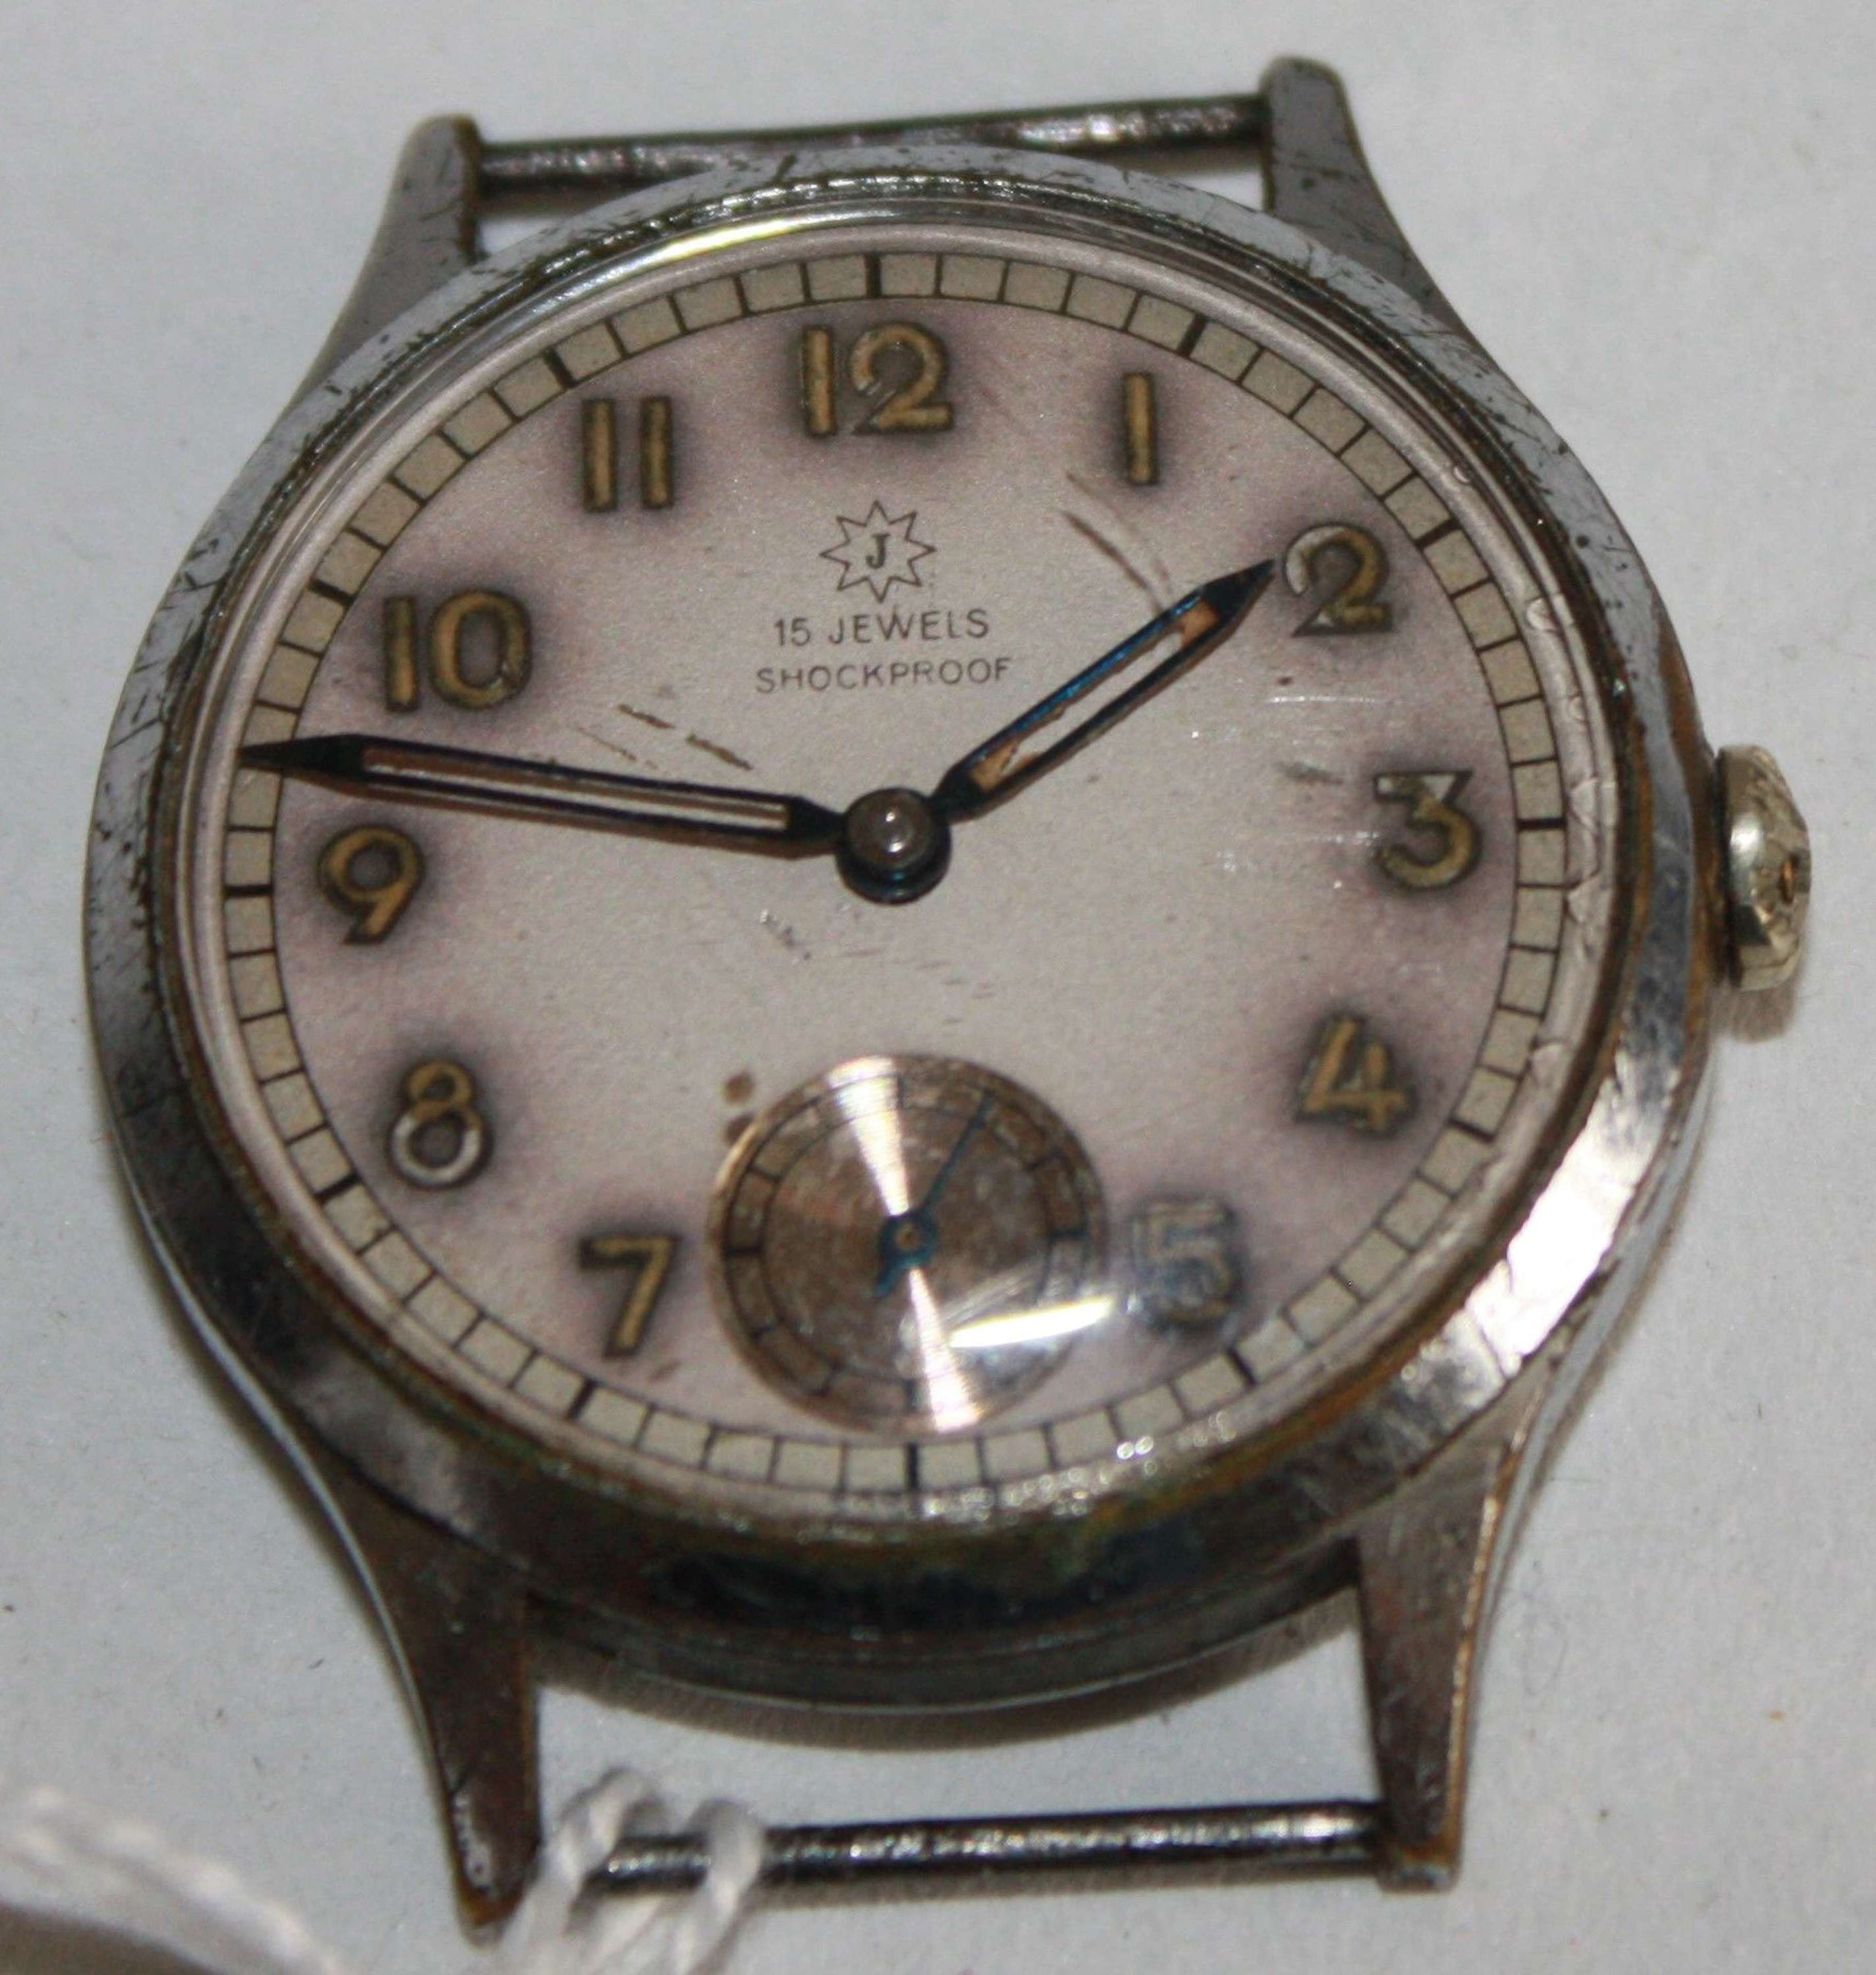 A GOOD WORKING WWII PERIOD PRIVATE PURCHASE GERMAN WRIST WATCH